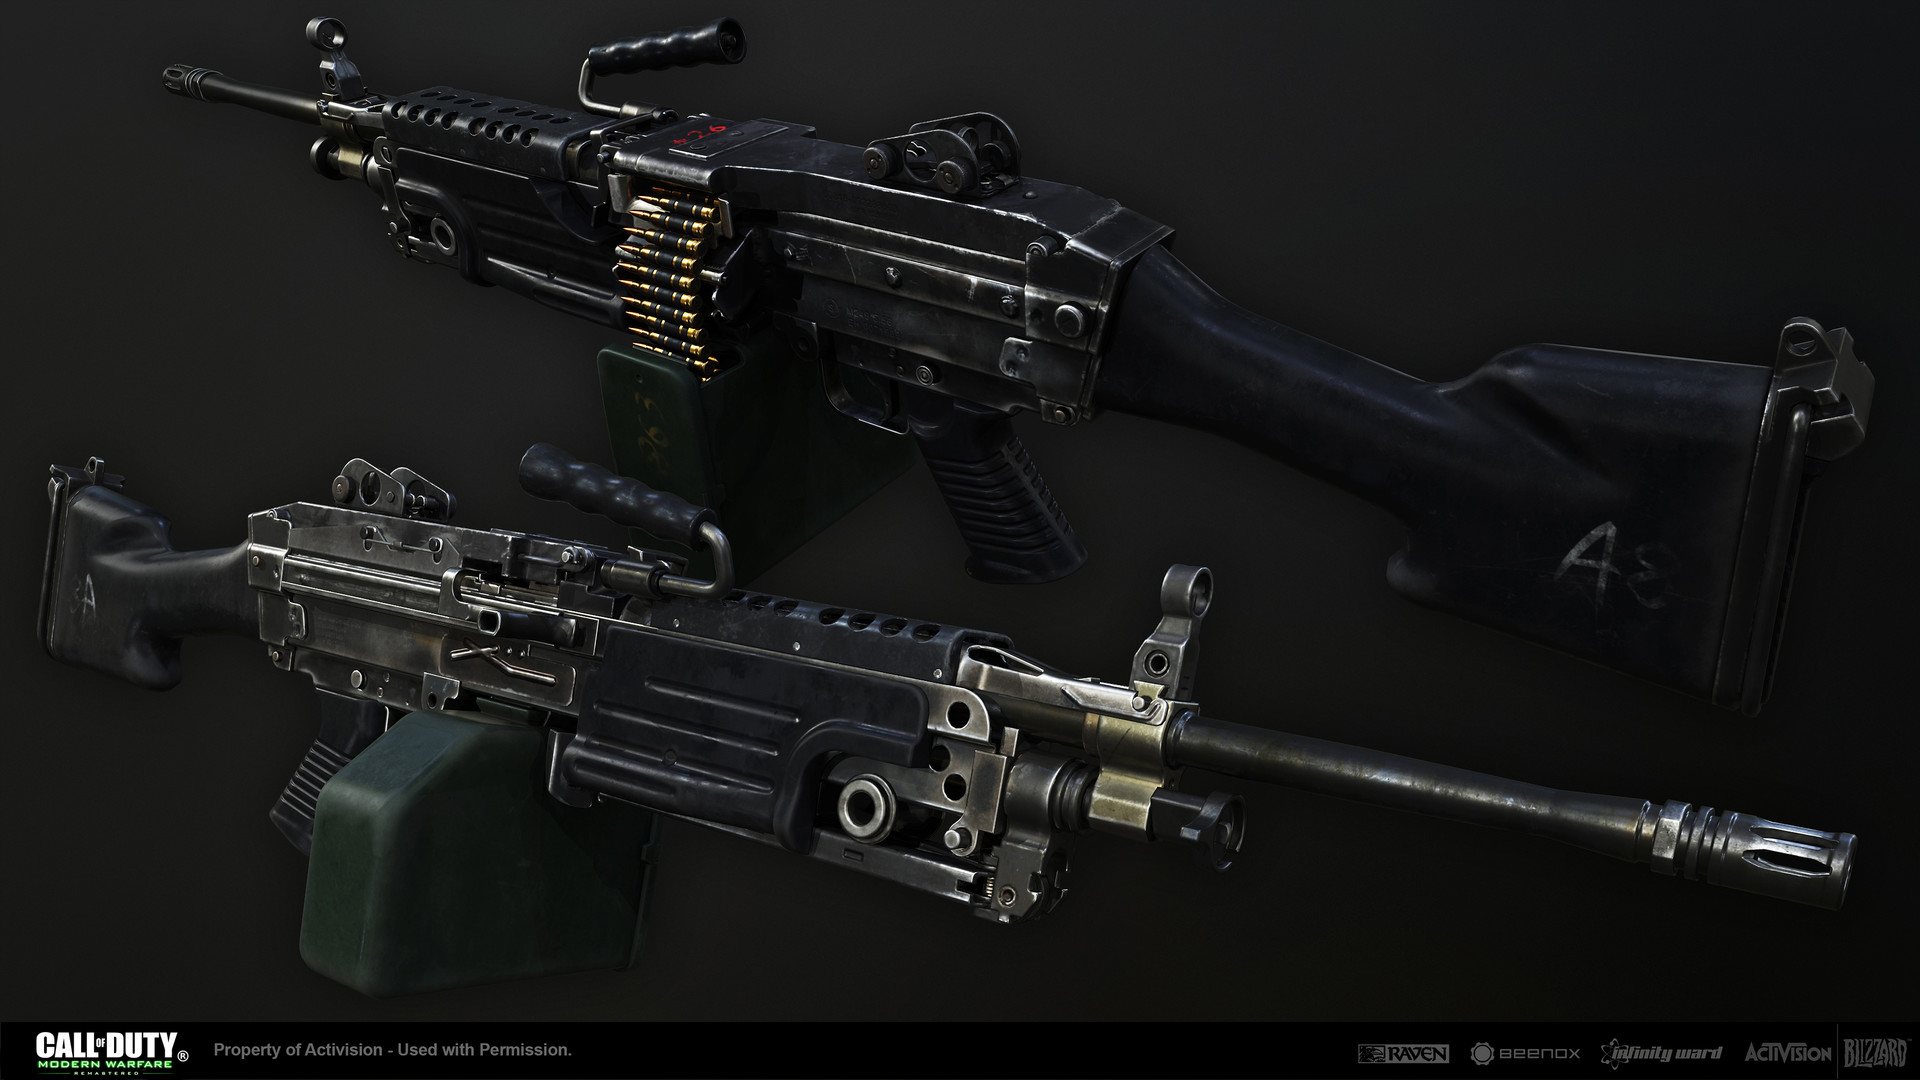 Call Of Duty: Modern Warfare Remastered Weapons